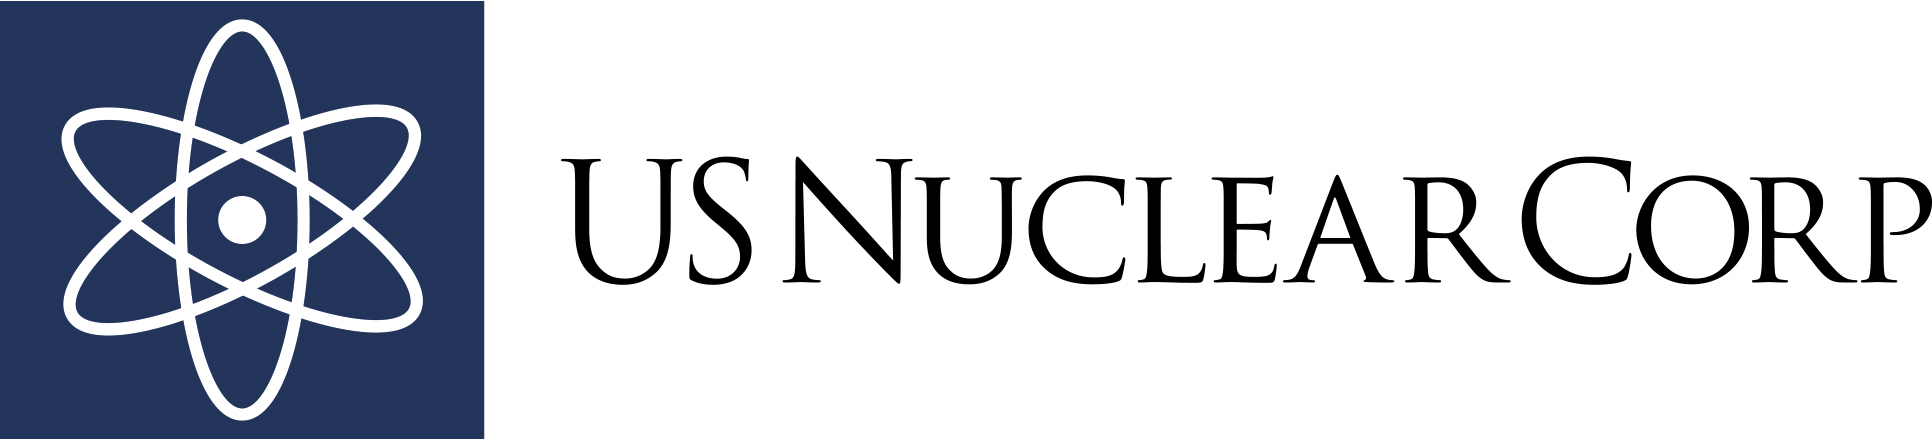 """Uptick Newswire Hosts Bob Goldstein of US Nuclear Corp. on """"Stock Day"""" Podcast US Nuclear Receives New Orders for Replacing Competitor Equipment US Nuclear Expansion in China US Nuclear Corp. Discuss Finalizing Agreement with MIFTEC on StockNewsNow.com"""